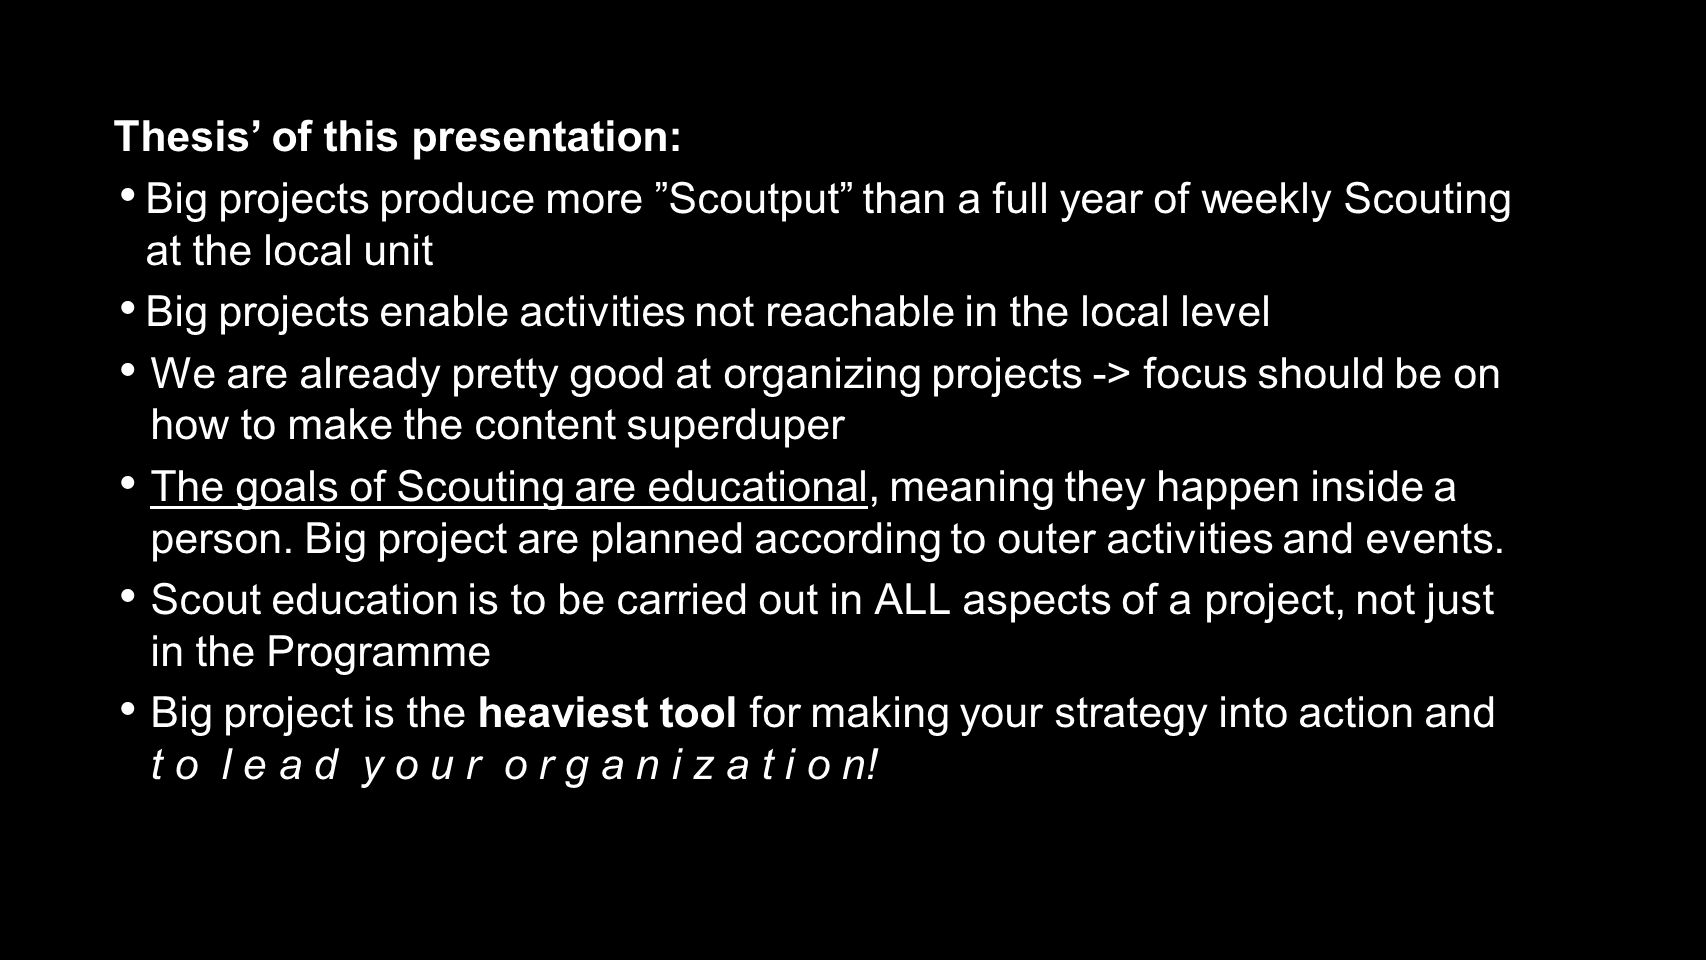 Thesis' of this presentation: Big projects produce more Scoutput than a full year of weekly Scouting at the local unit Big projects enable activities not reachable in the local level We are already pretty good at organizing projects -> focus should be on how to make the content superduper The goals of Scouting are educational, meaning they happen inside a person.